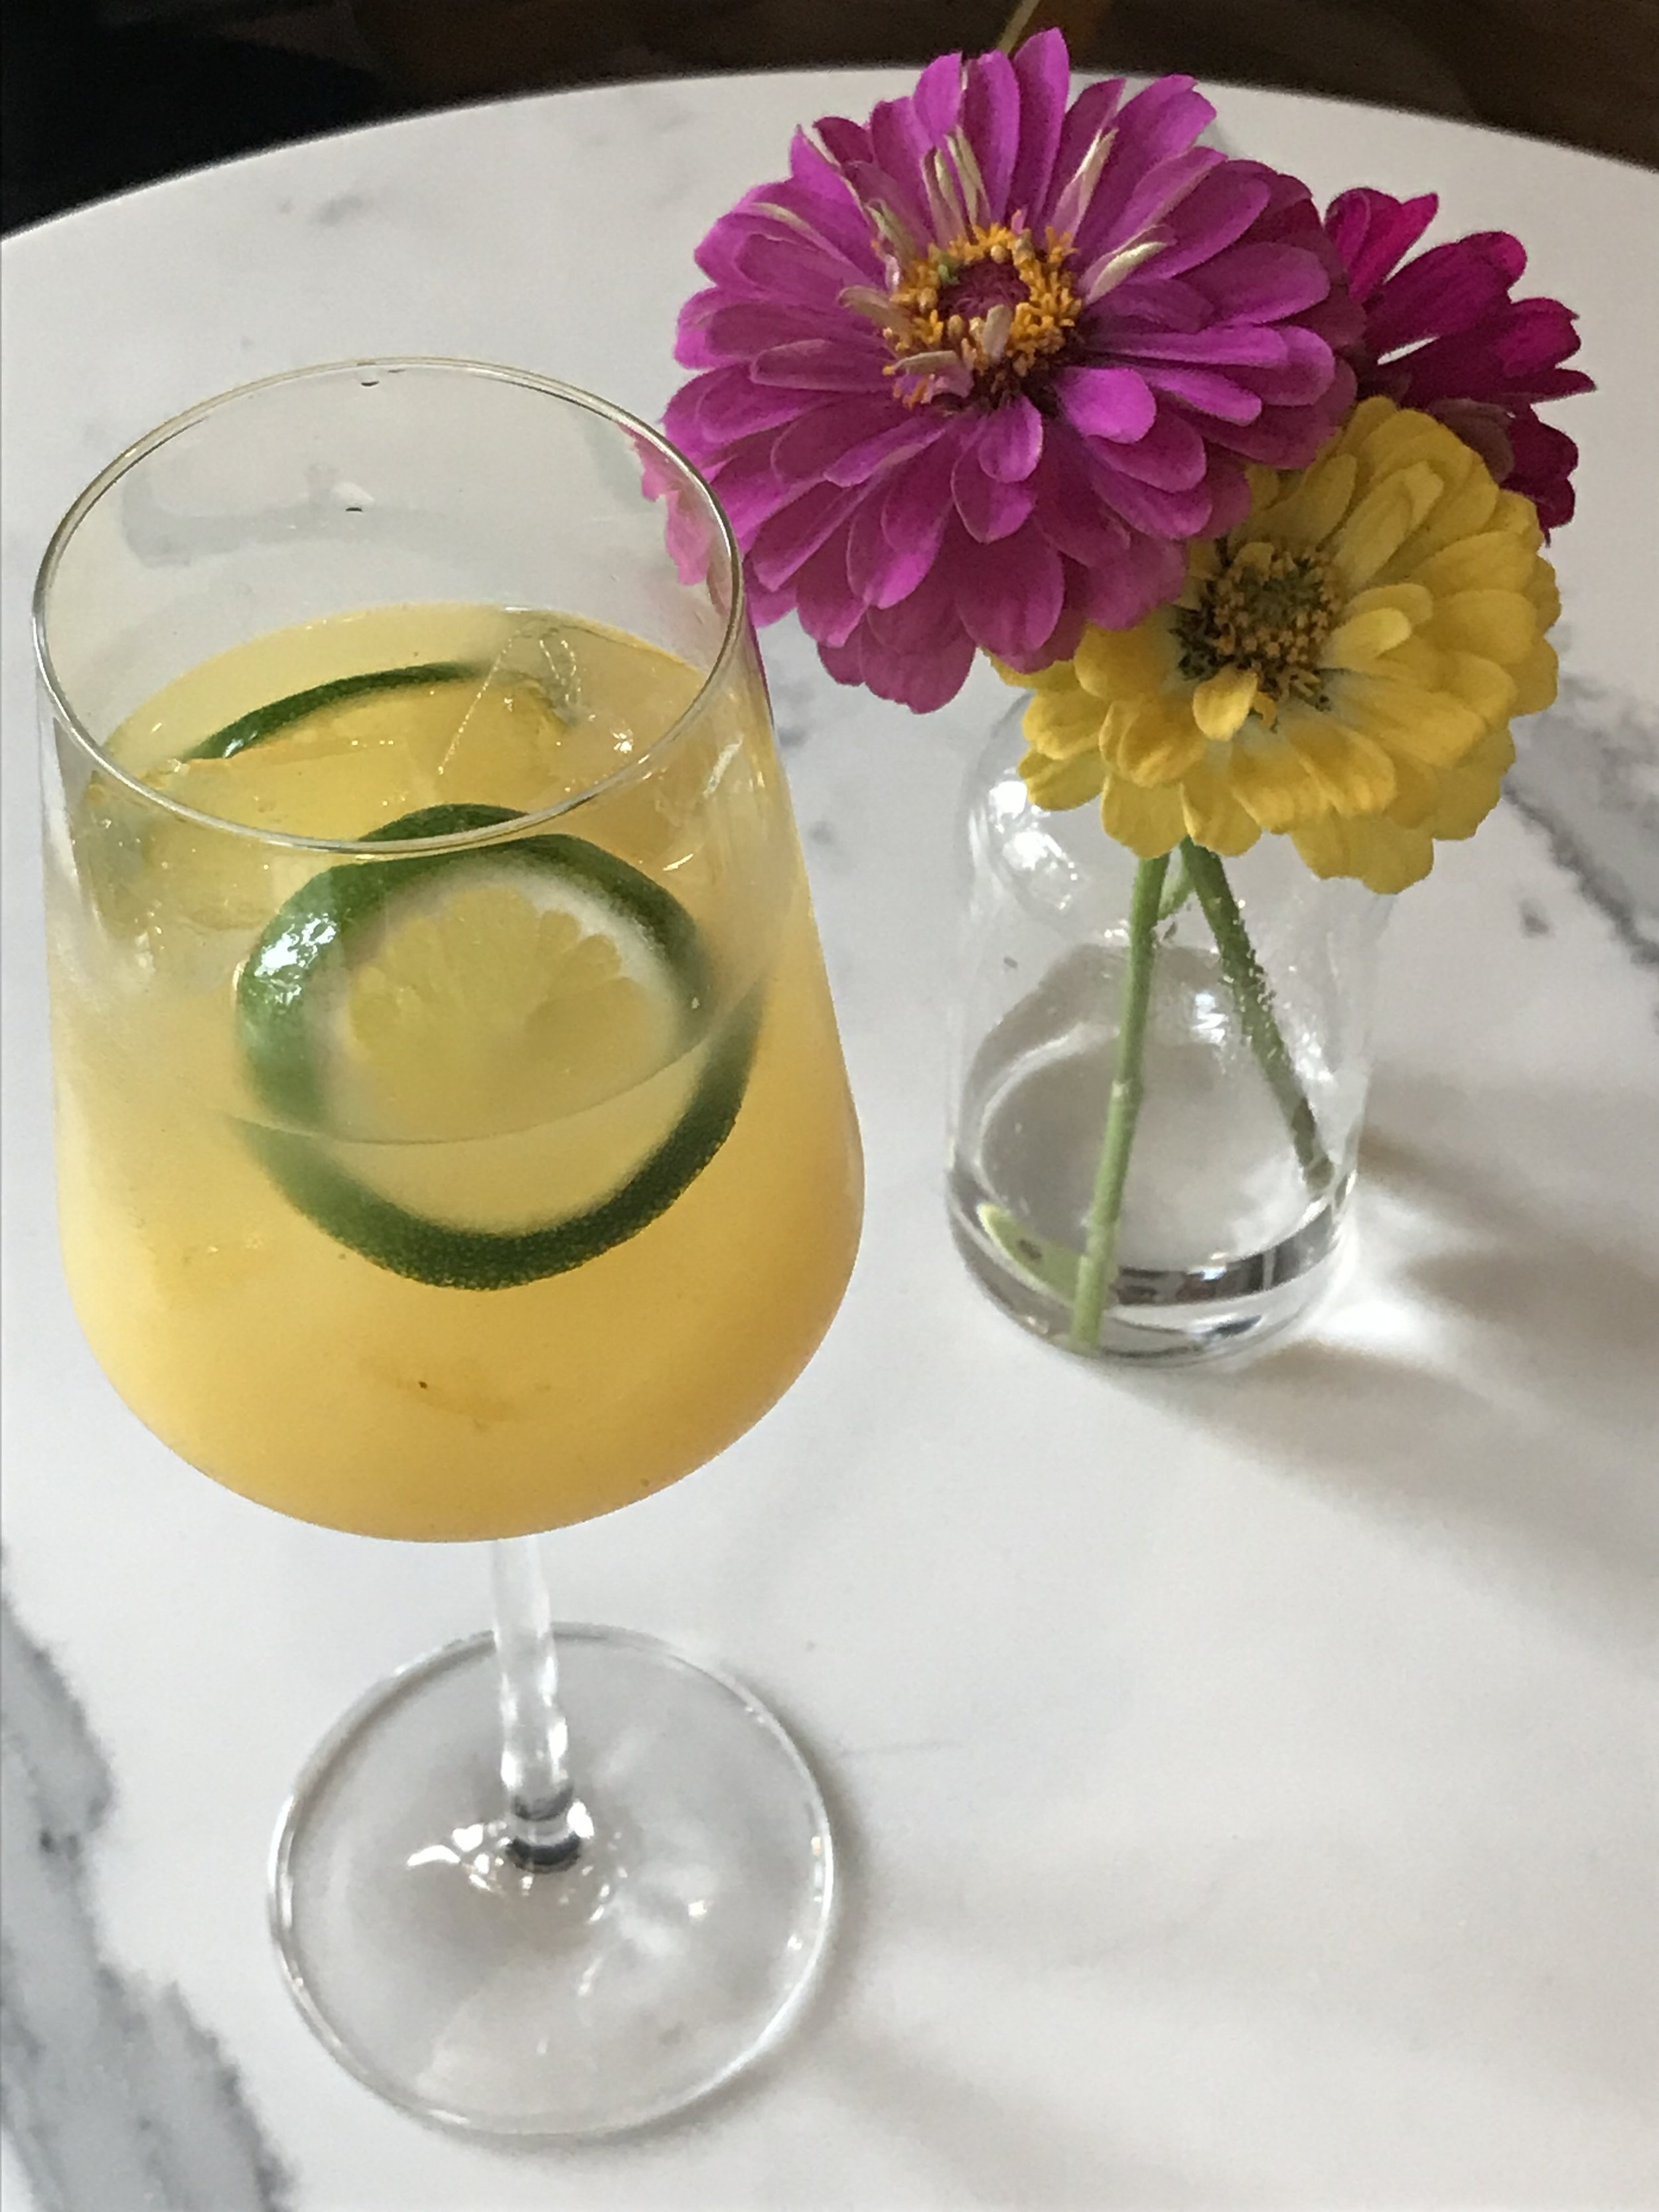 Sangria Soirée Wednesdays - Refreshingly delicious house-made sangria served every Wednesday this summer from 4:30 to 6:30 pm on the patio or inside – enjoy a glass ($6) or bring some friends and make it a small or large carafe ($15/$25)